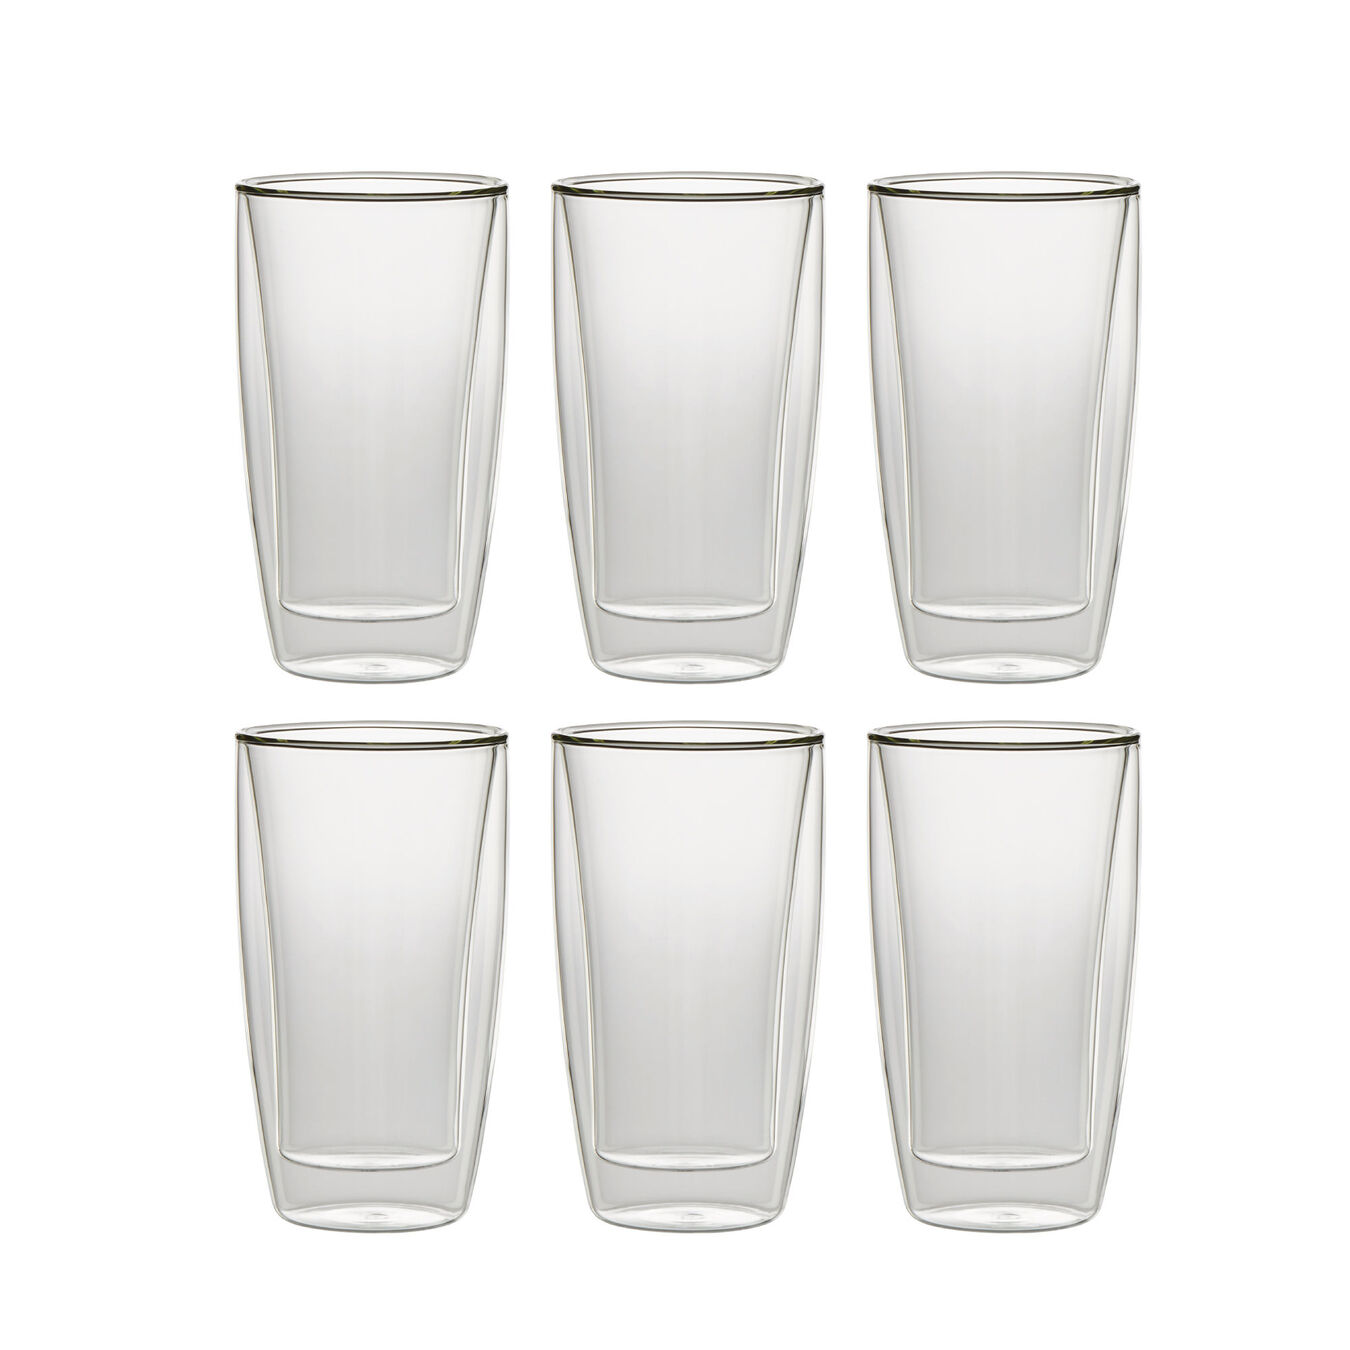 6 Piece Double-Wall Beverage Glass Set,,large 1